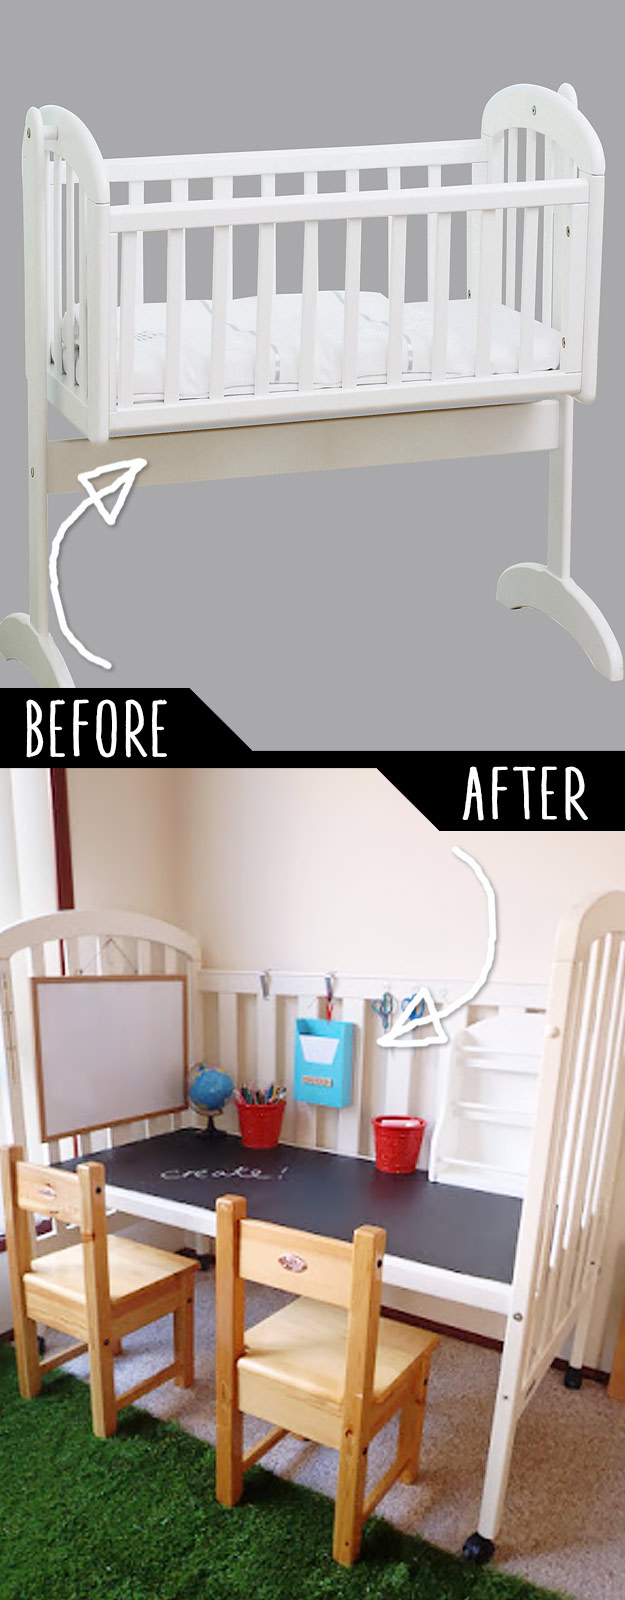 old ikea cot instructions